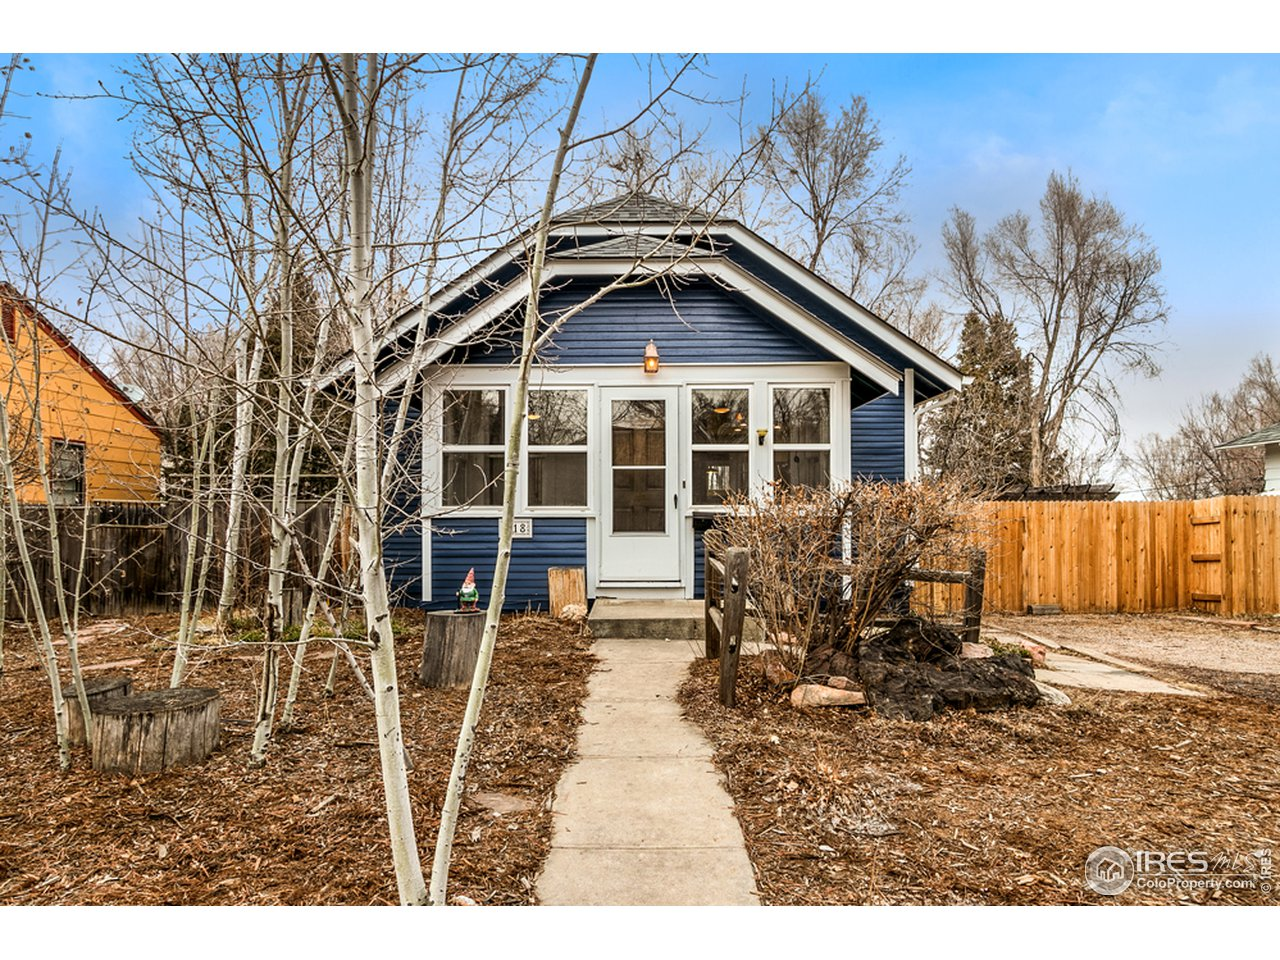 918 Sycamore St, Fort Collins CO 80521